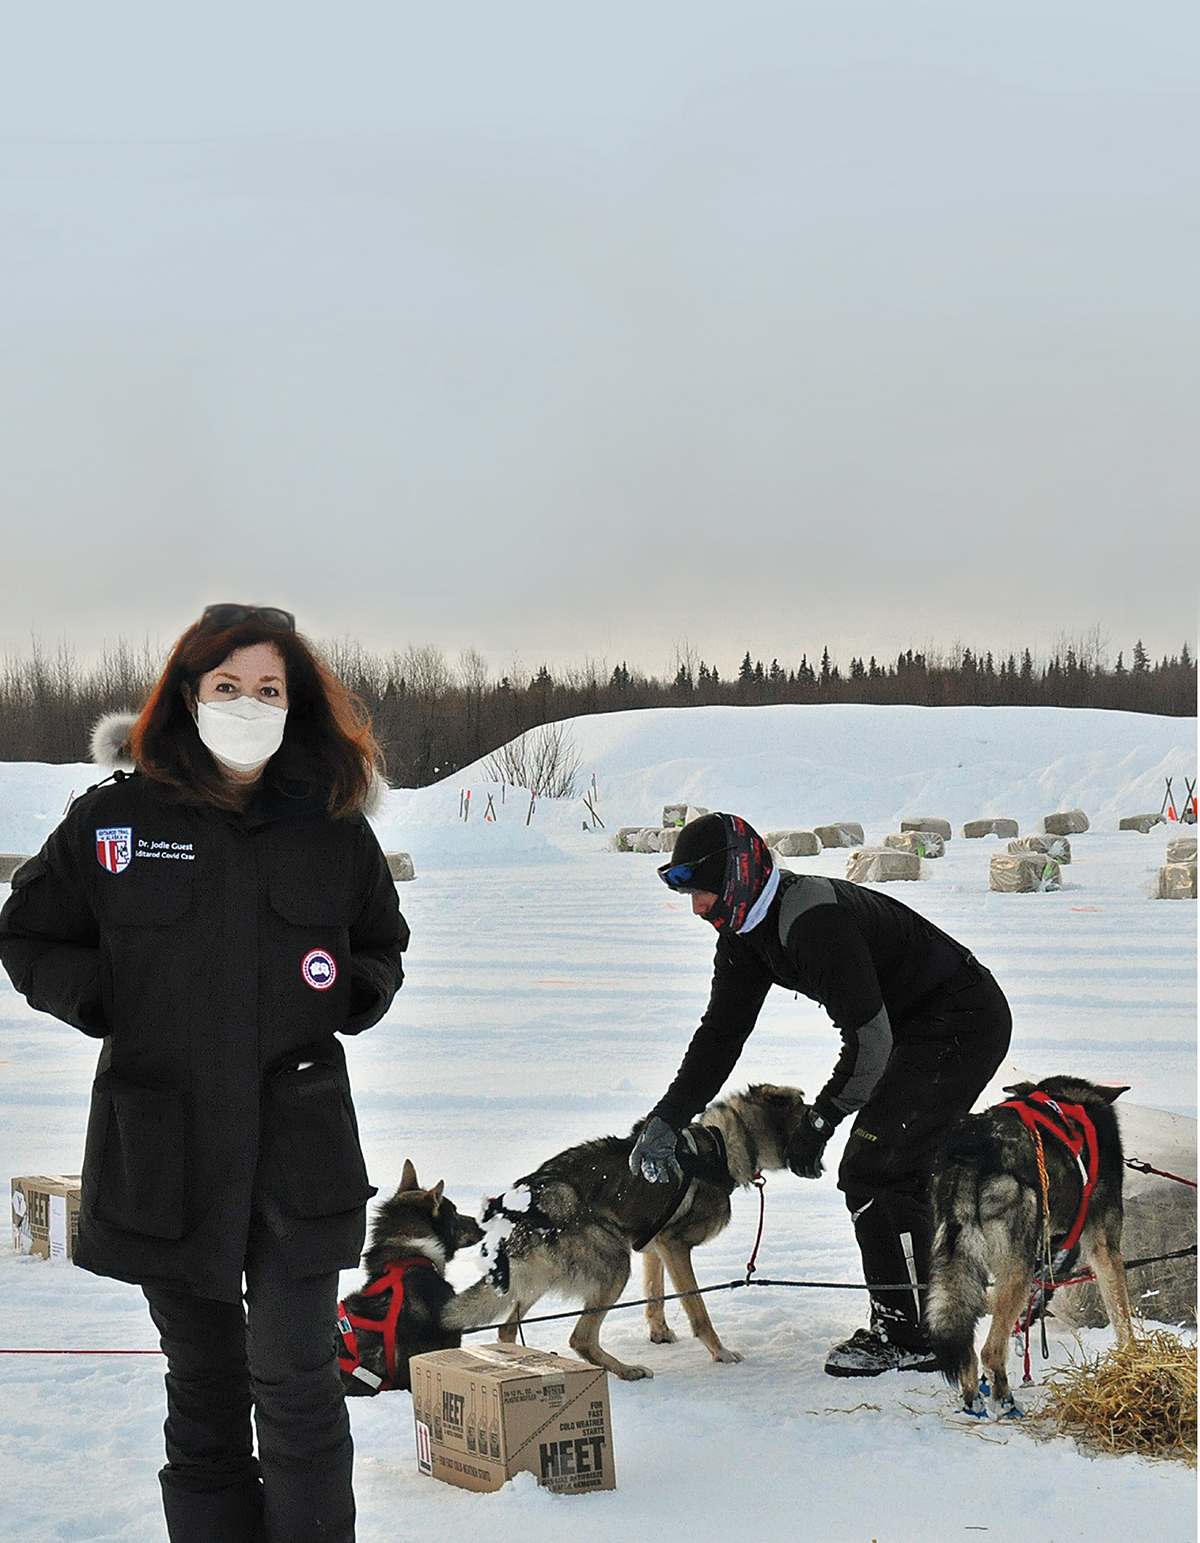 Emory researcher Dr. Jodi Guest stands in the snow, wearing a parka and face covering, surrounded by sled dogs and gear.